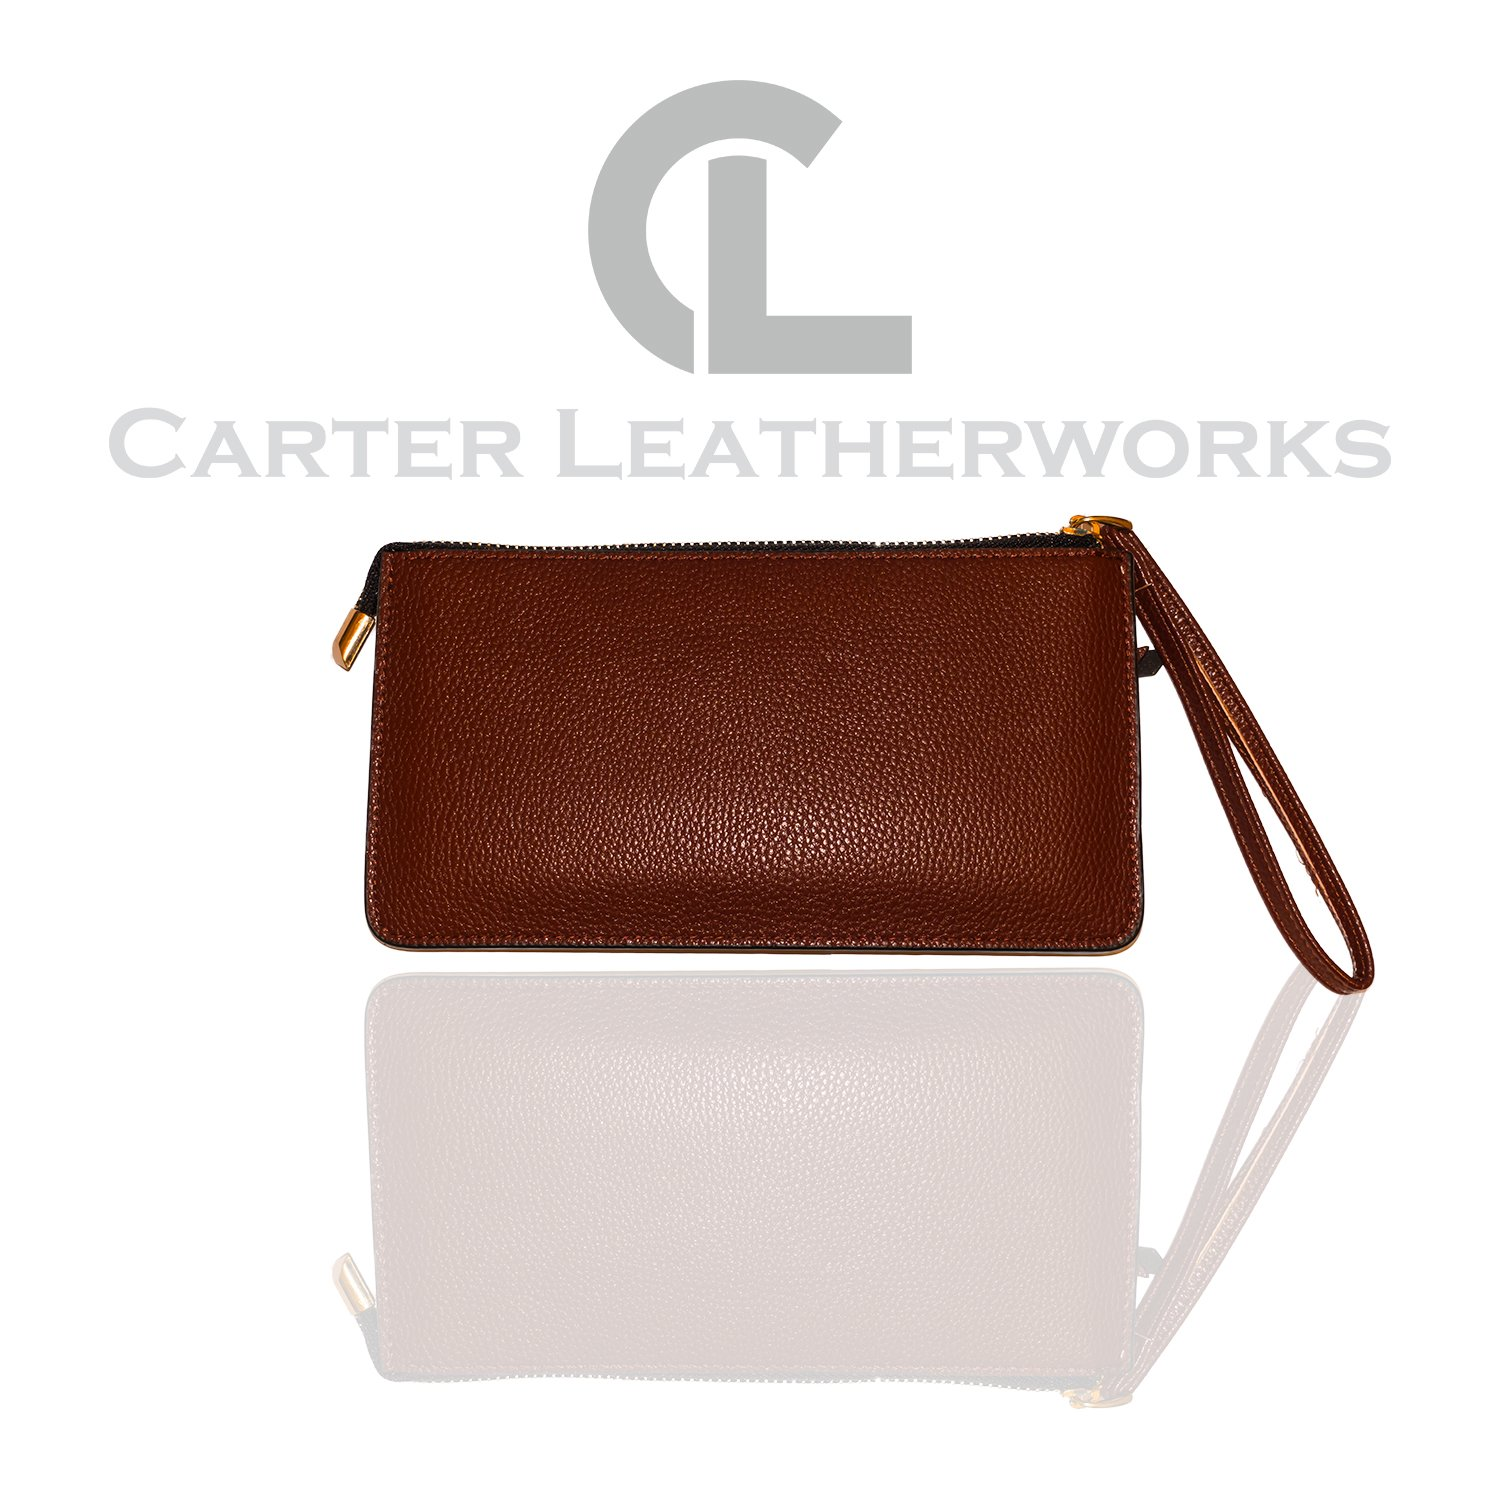 Carter Leatherworks Rodeo Womens PU Vegan Leather Wristlet Wallet Clutch Purse Fits Any Smartphone (Coffee) by Carter Leatherworks (Image #2)